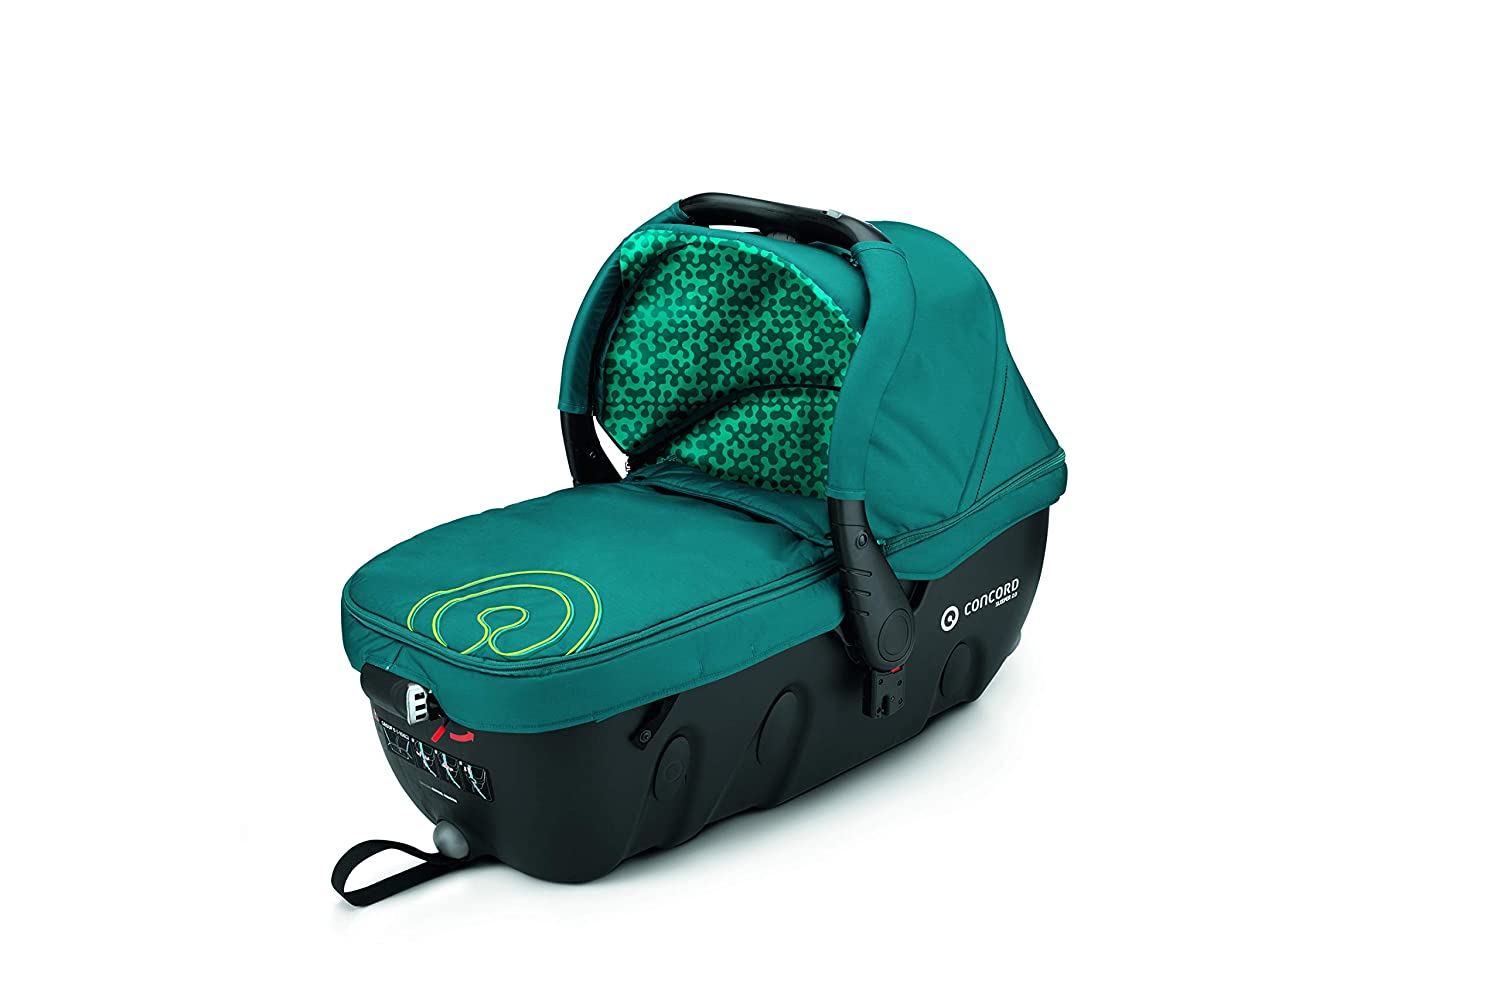 Concord Neo Travel Set - Sistema modular neo + sleeper + air 0+, Color Scuba Green